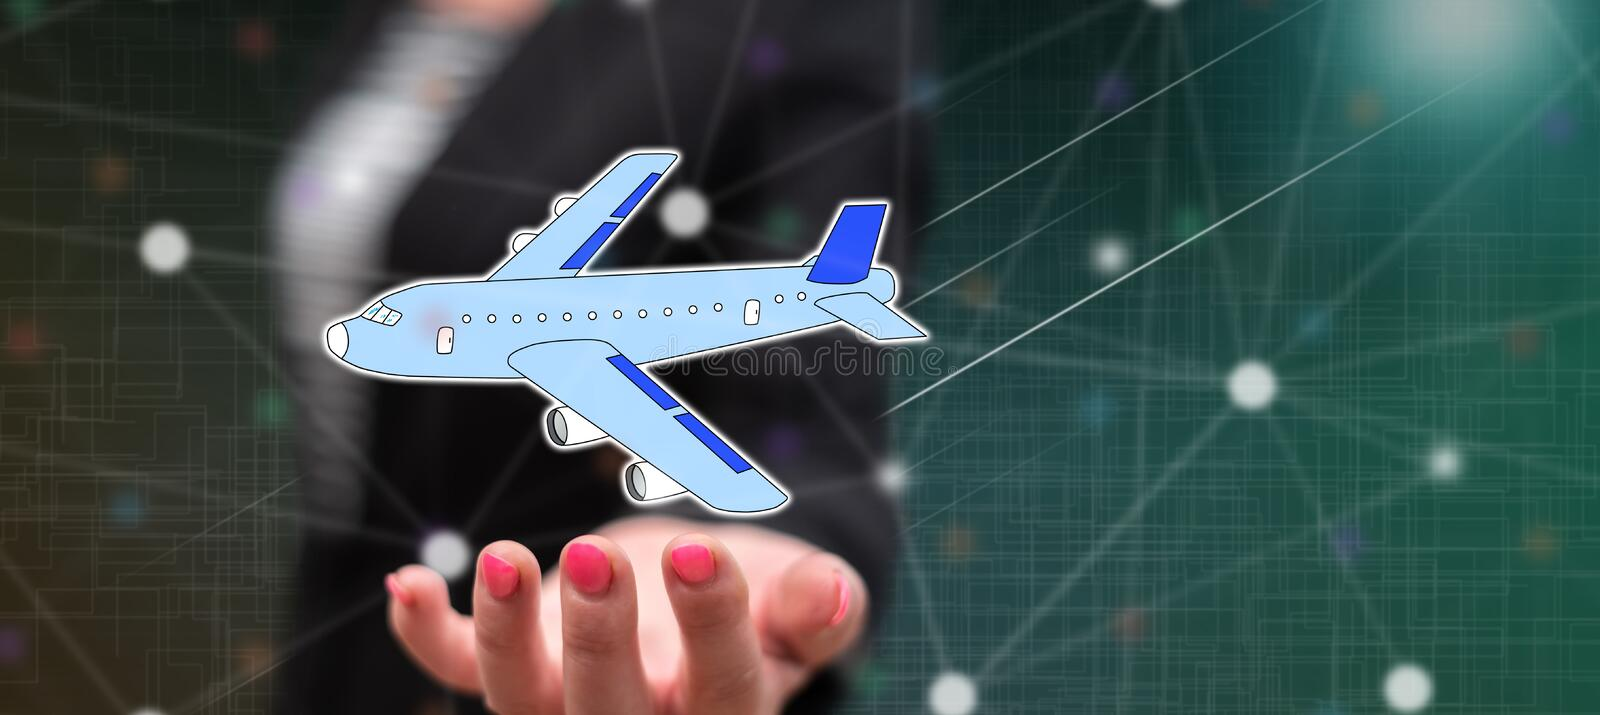 Concept of air transport. Air transport concept above the hand of a woman in background royalty free stock photo